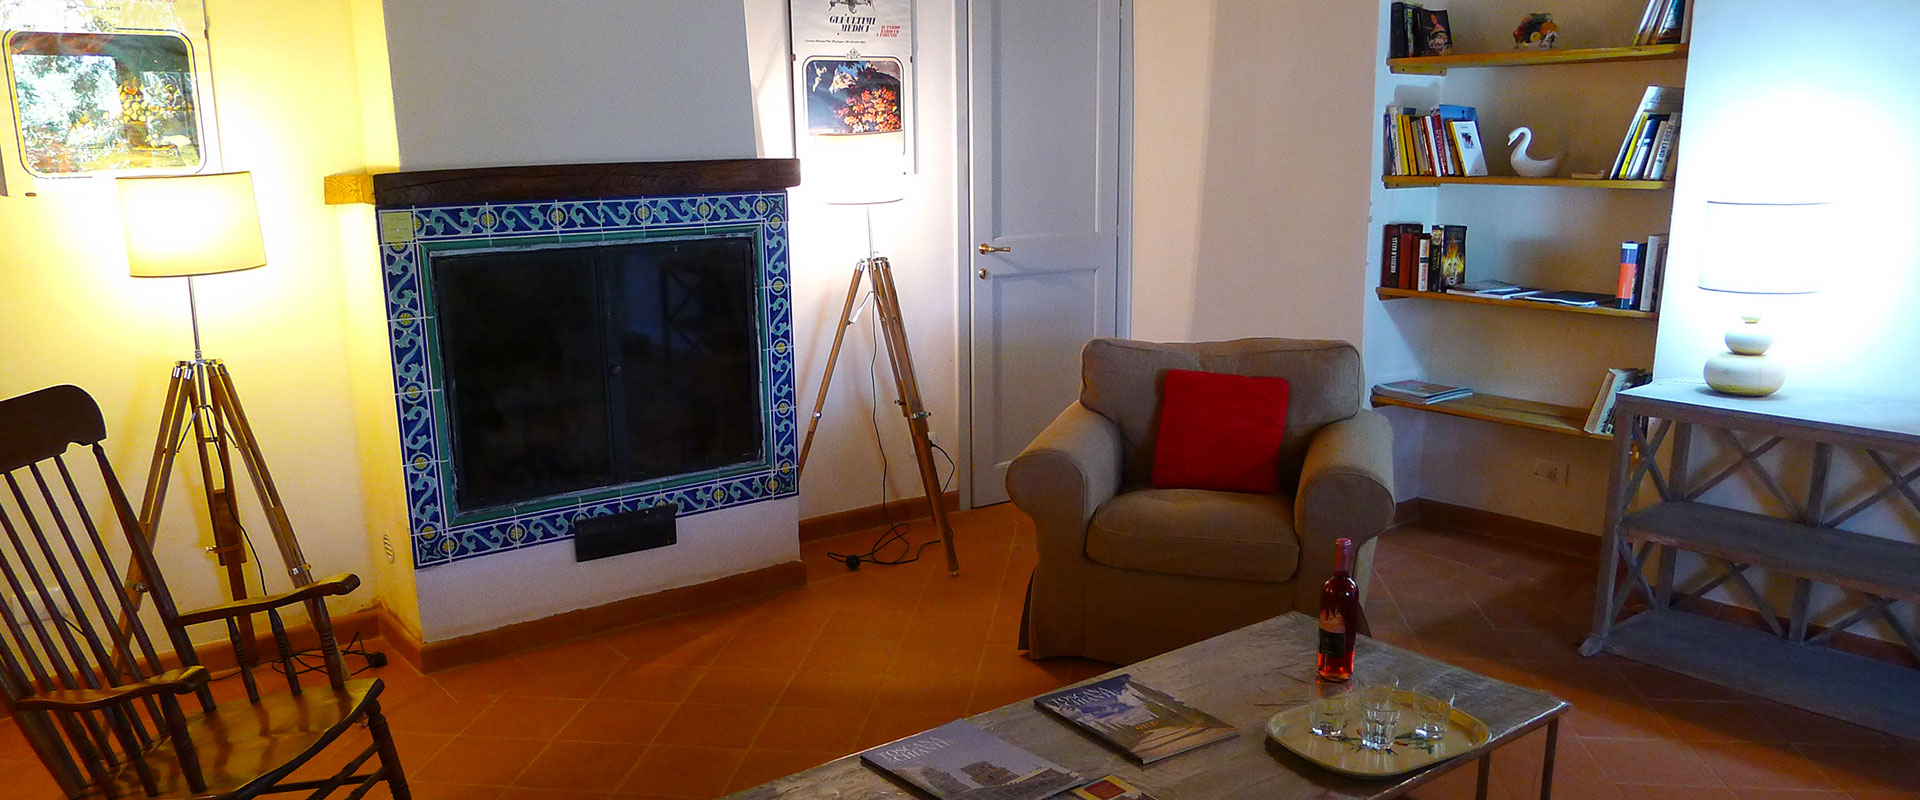 Villa for rent in Maremma